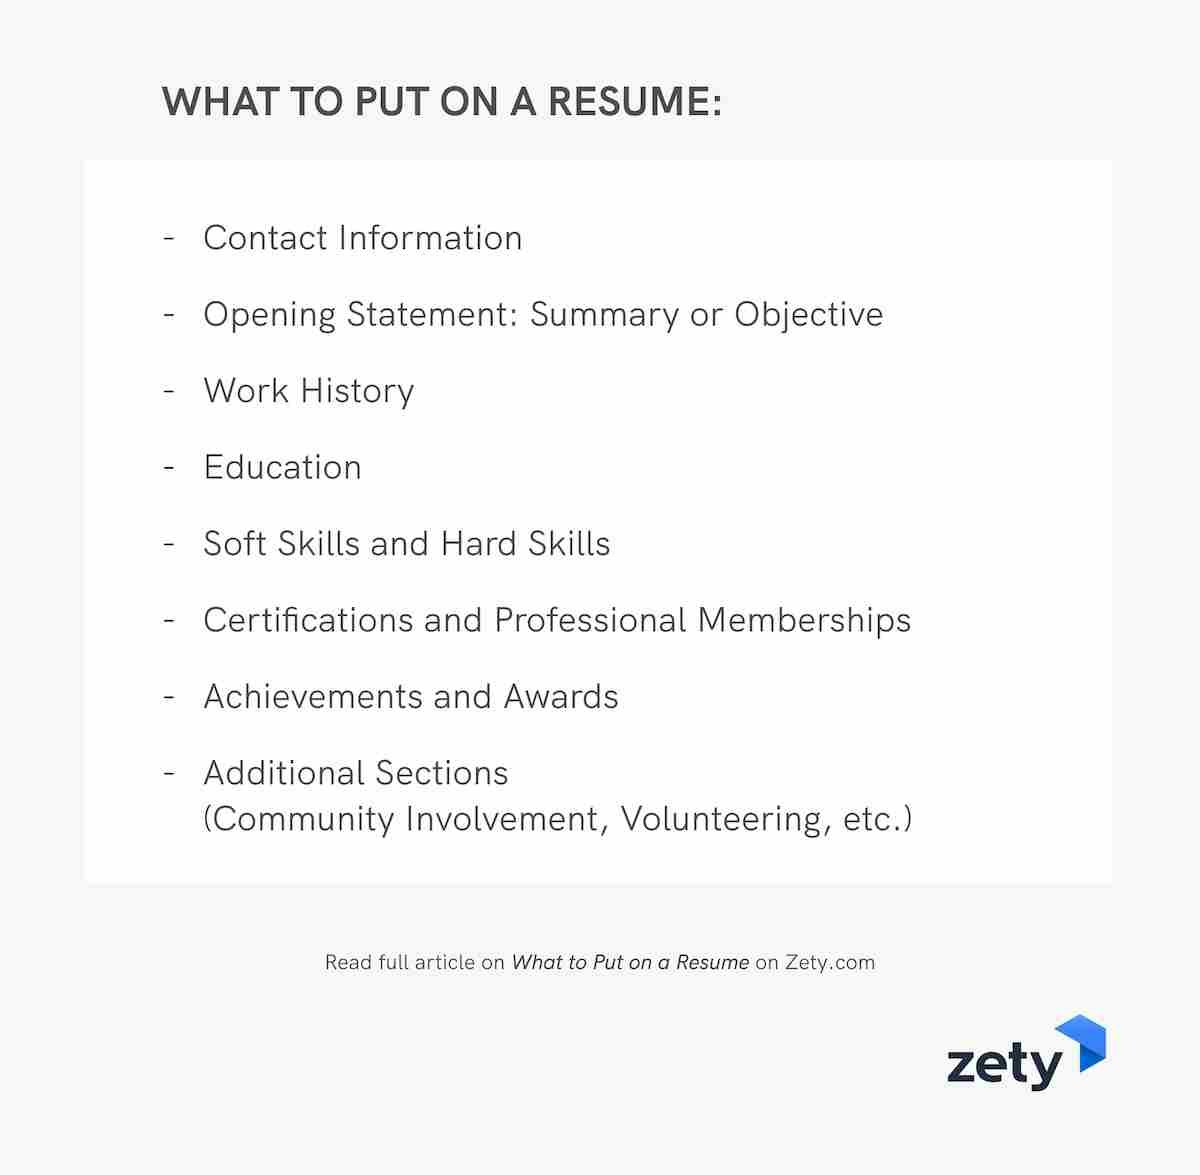 to put on resume good things you should include hvac job description sailing example esl Resume Should A Resume Include A Picture